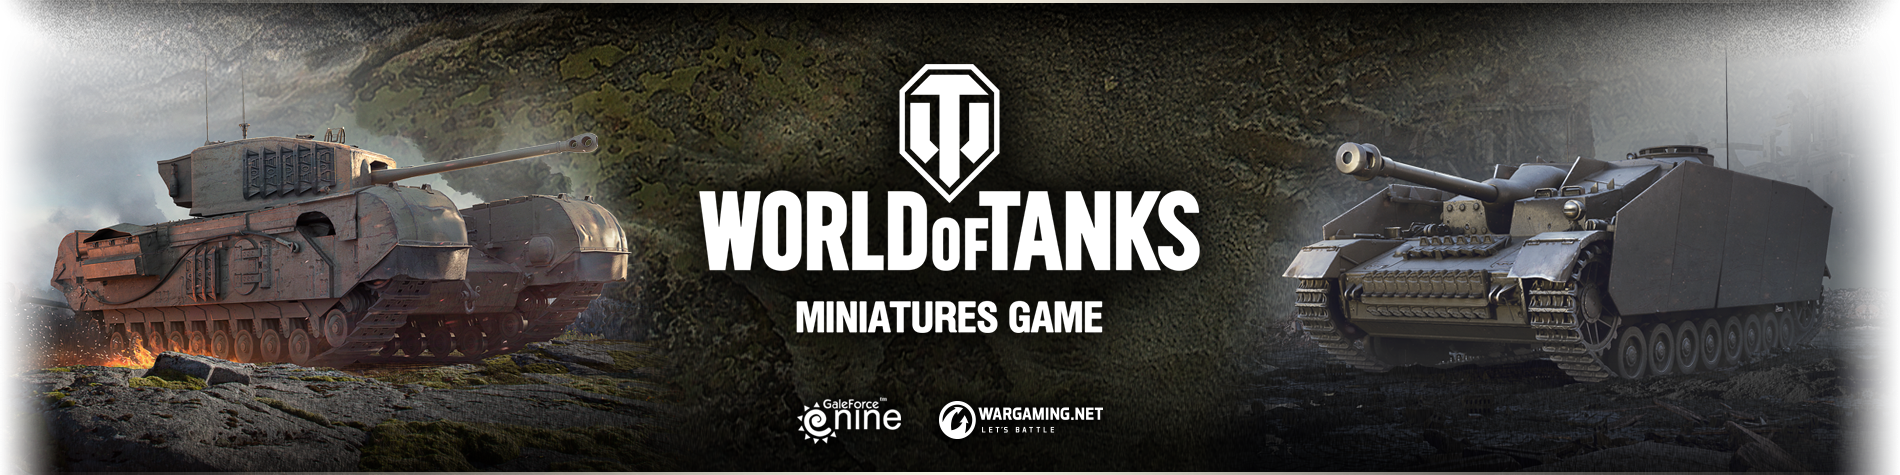 GF9 World of Tanks